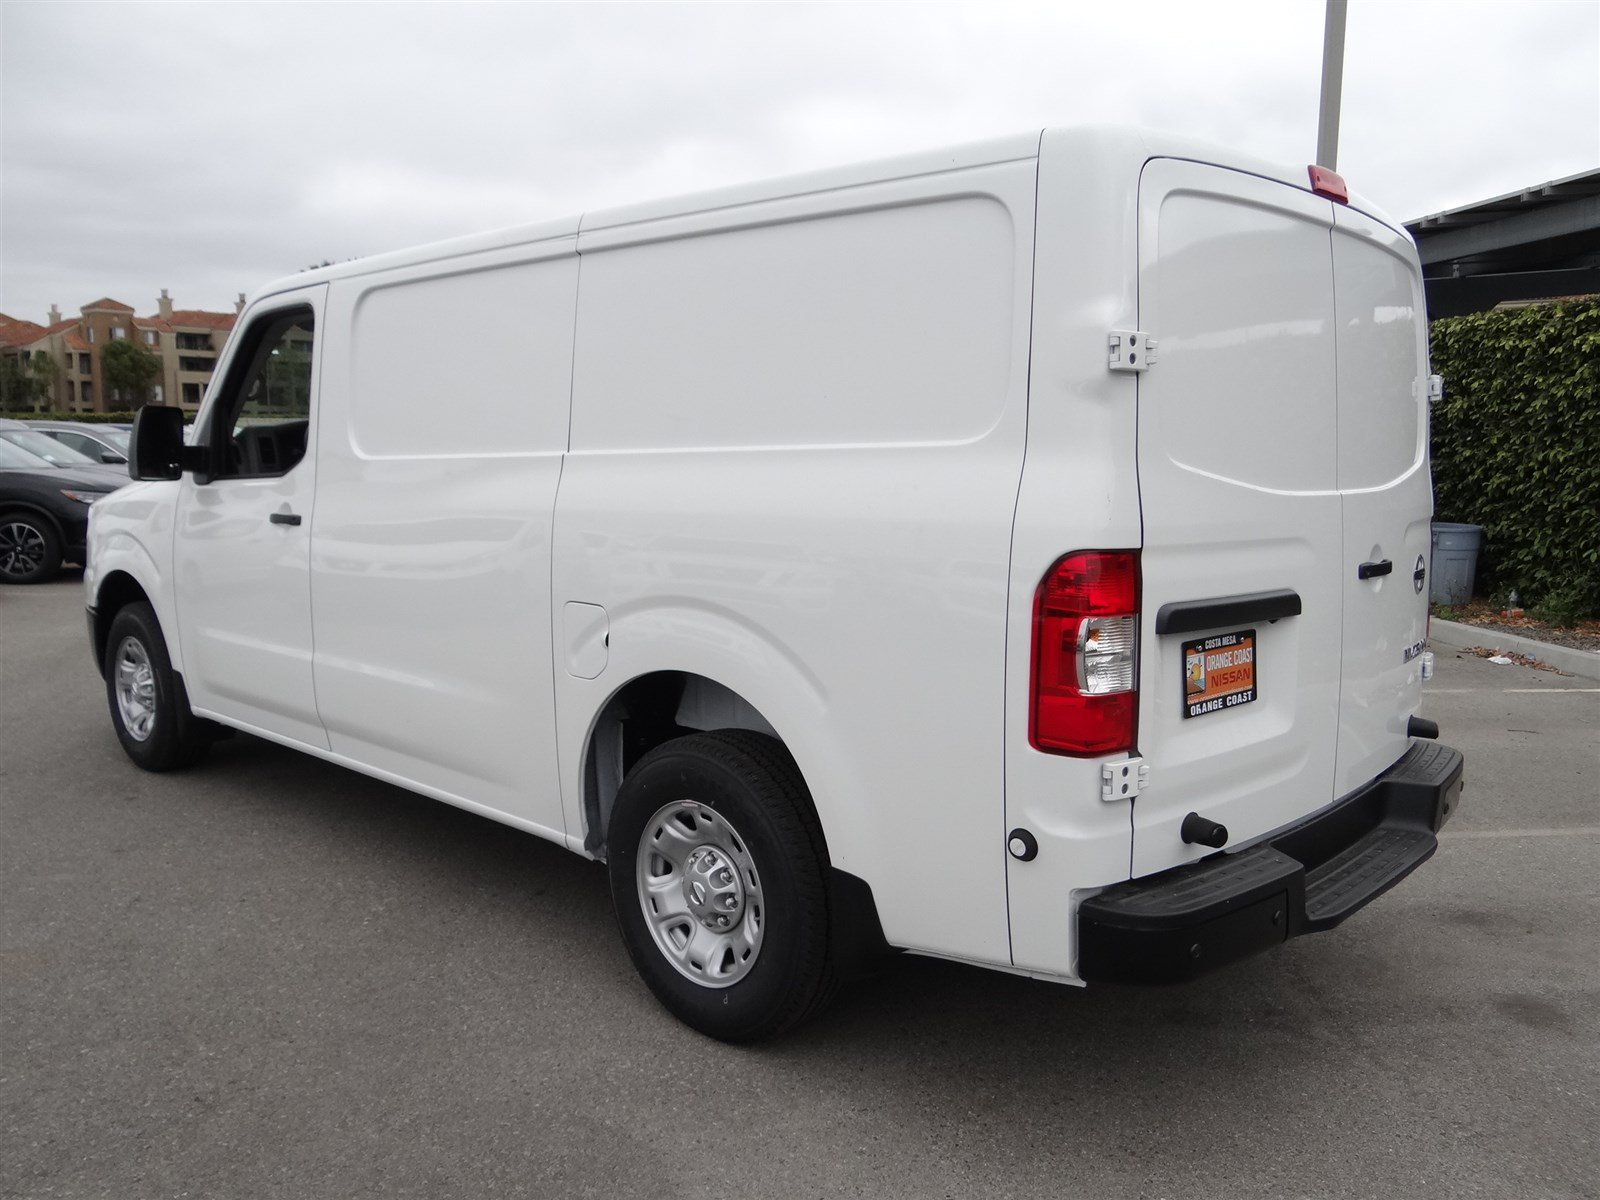 New 2018 Nissan NV Cargo SV Full size Cargo Van in Costa Mesa